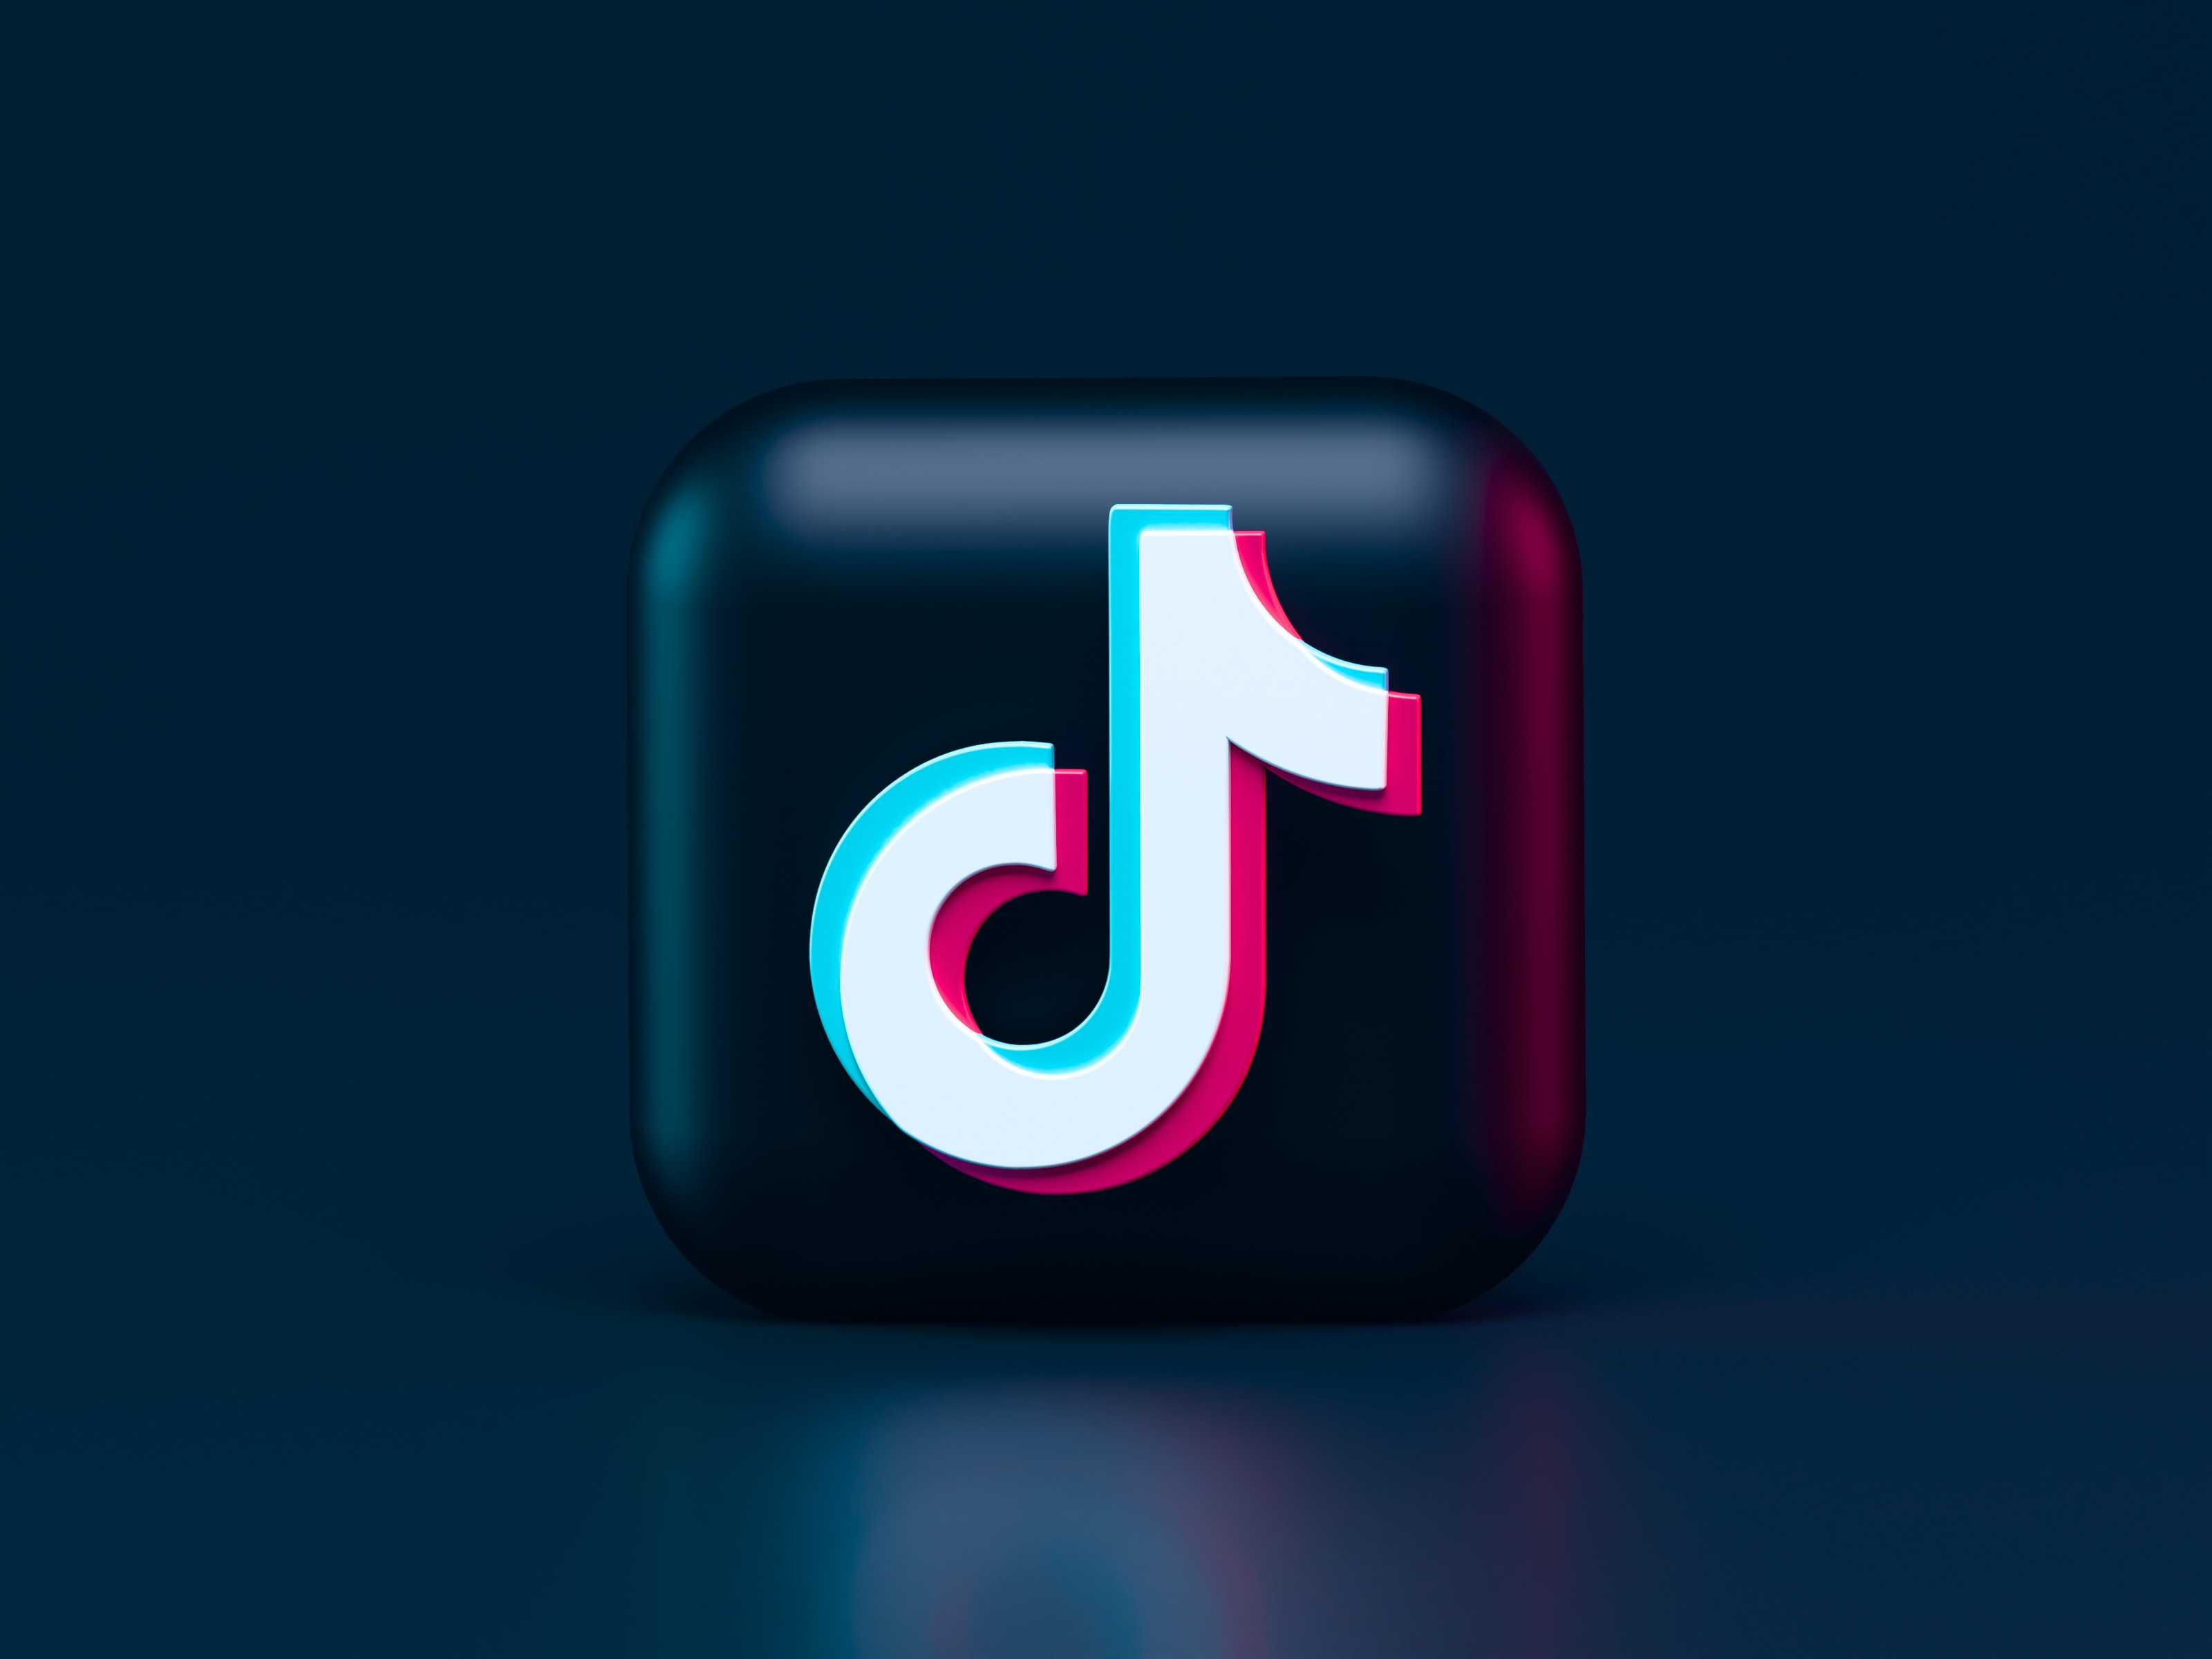 As TikTok's popularity is growing at warp speed, it's time to start TikTok Marketing with these insanely effective strategies and trends for your business.